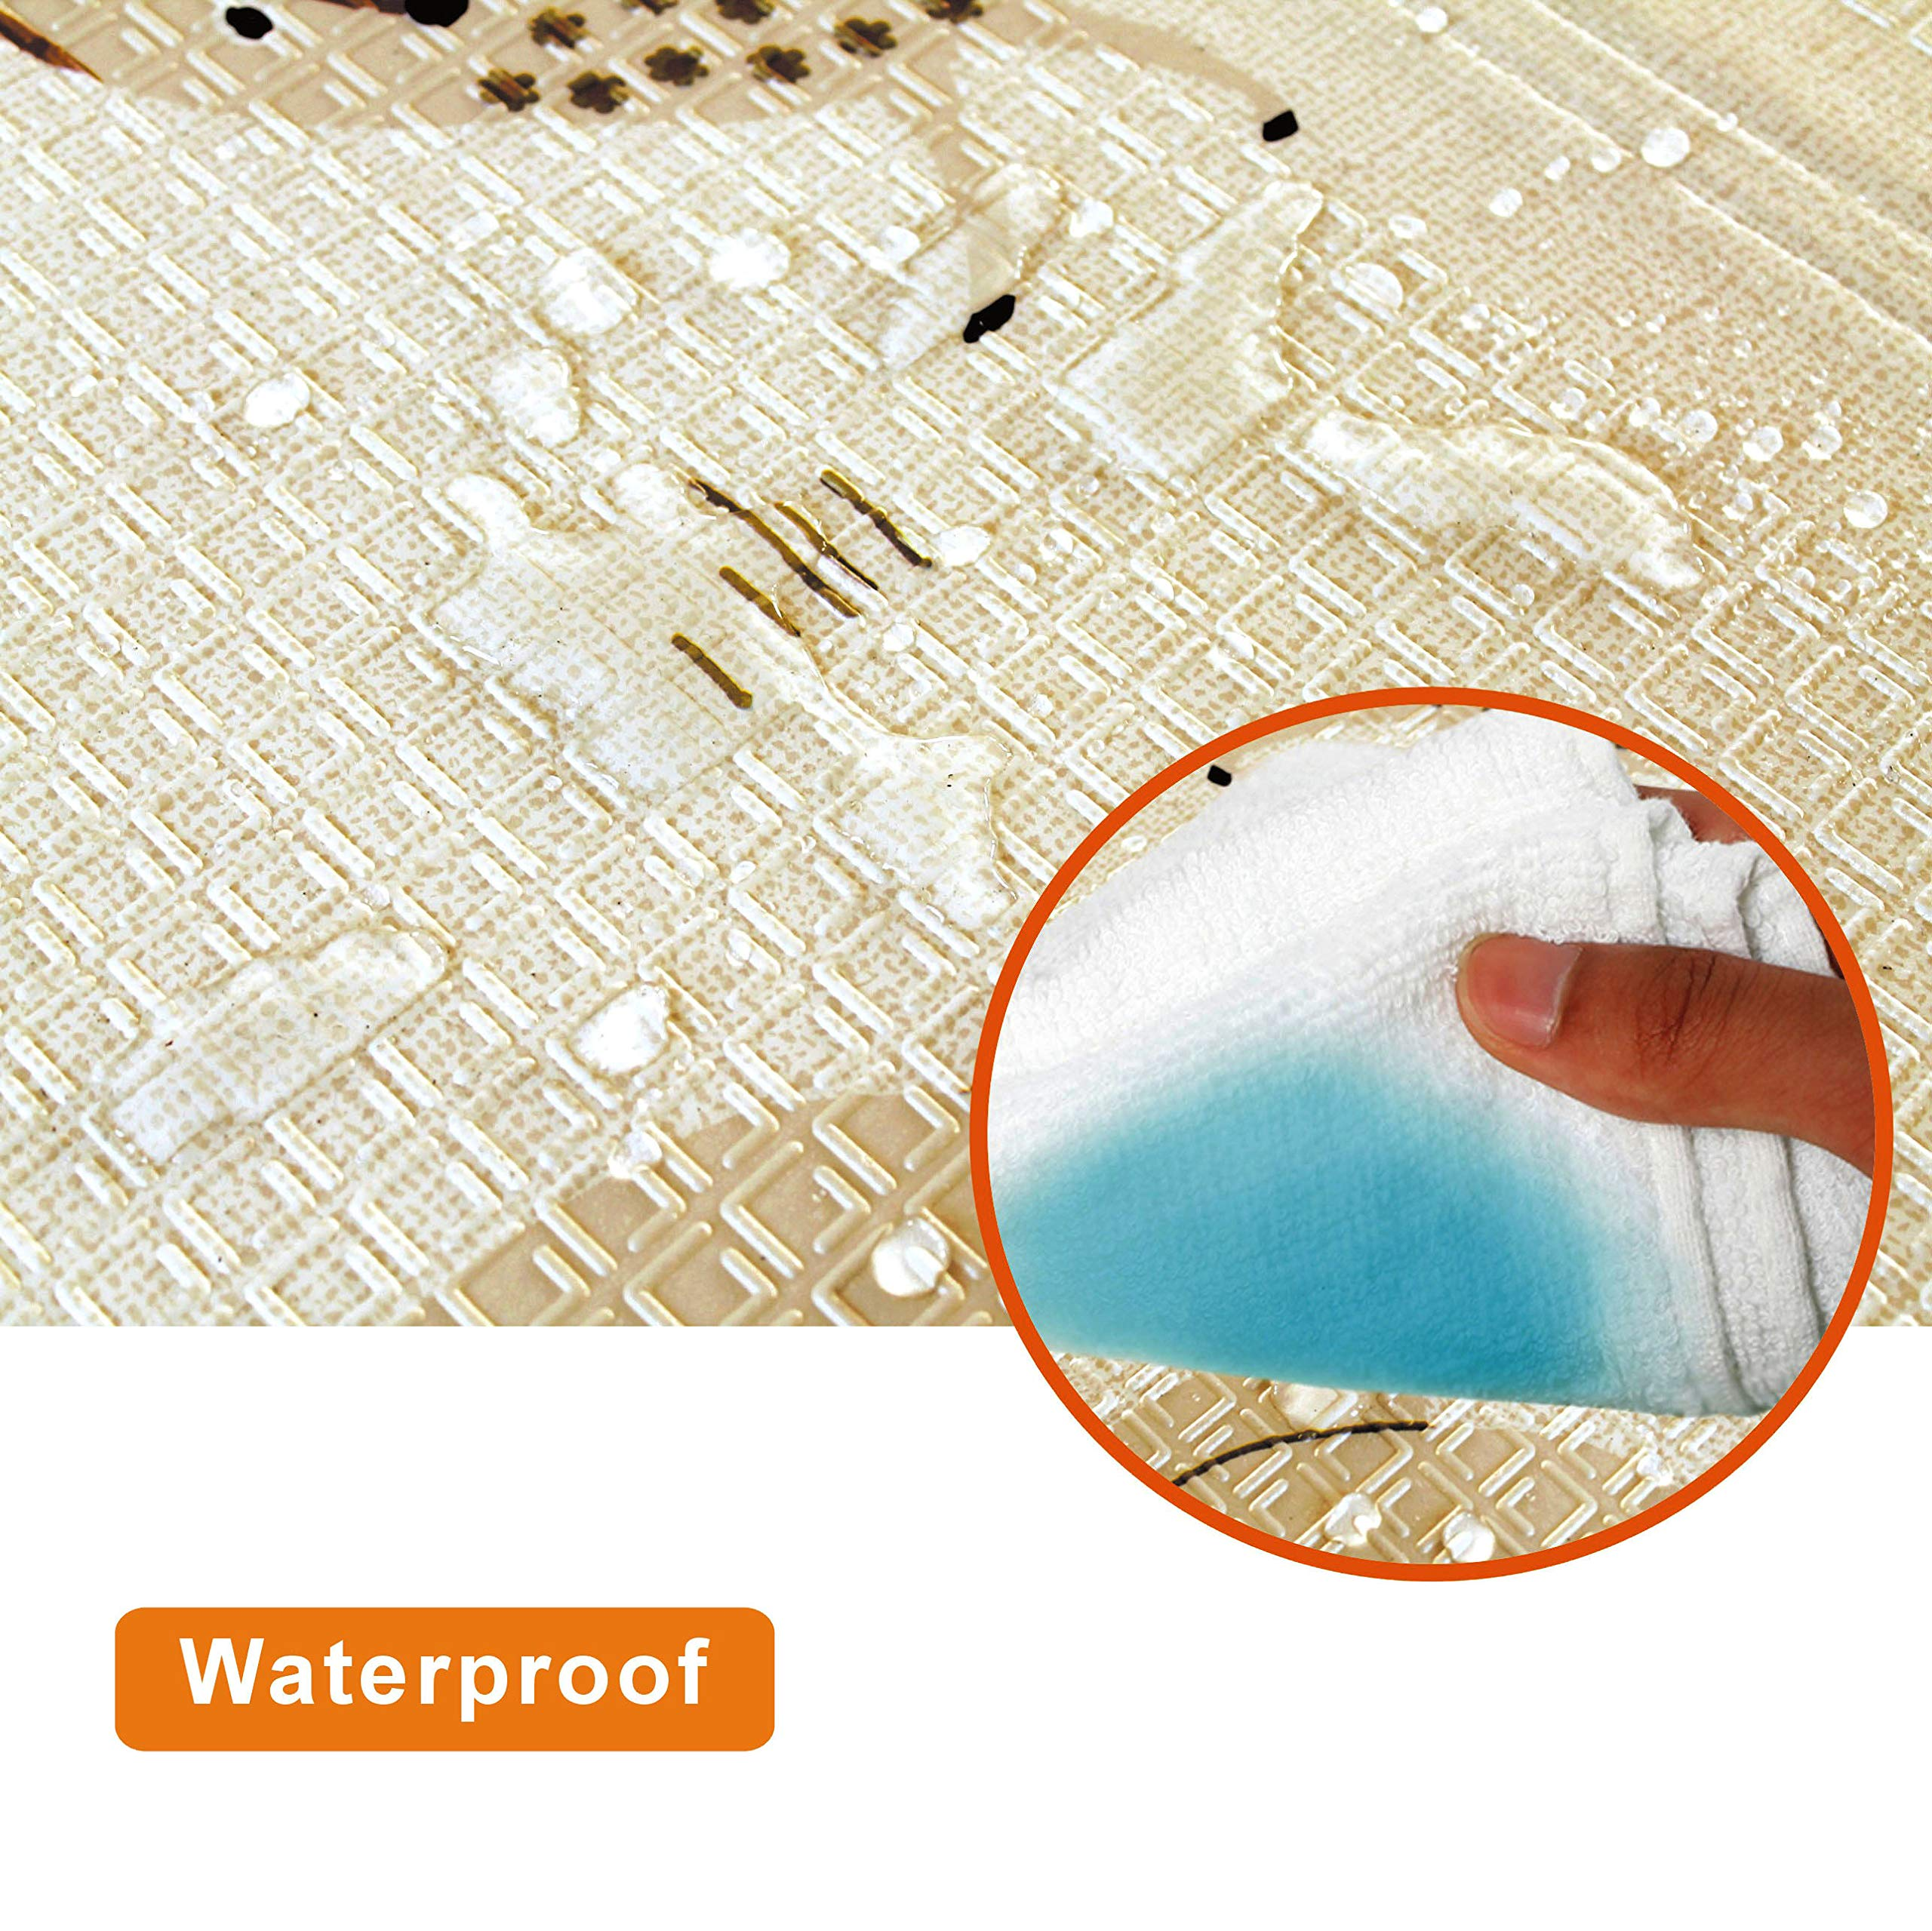 Baby Play mat Folding Baby Care XPE playmat Foam Floor Slip Extra Large Foam Reversible Waterproof Portable Double Sides Kids Baby Toddler Outdoor or Indoor Use Non Toxic, Colorful(57x76x0.4in) by Gupamiga (Image #6)